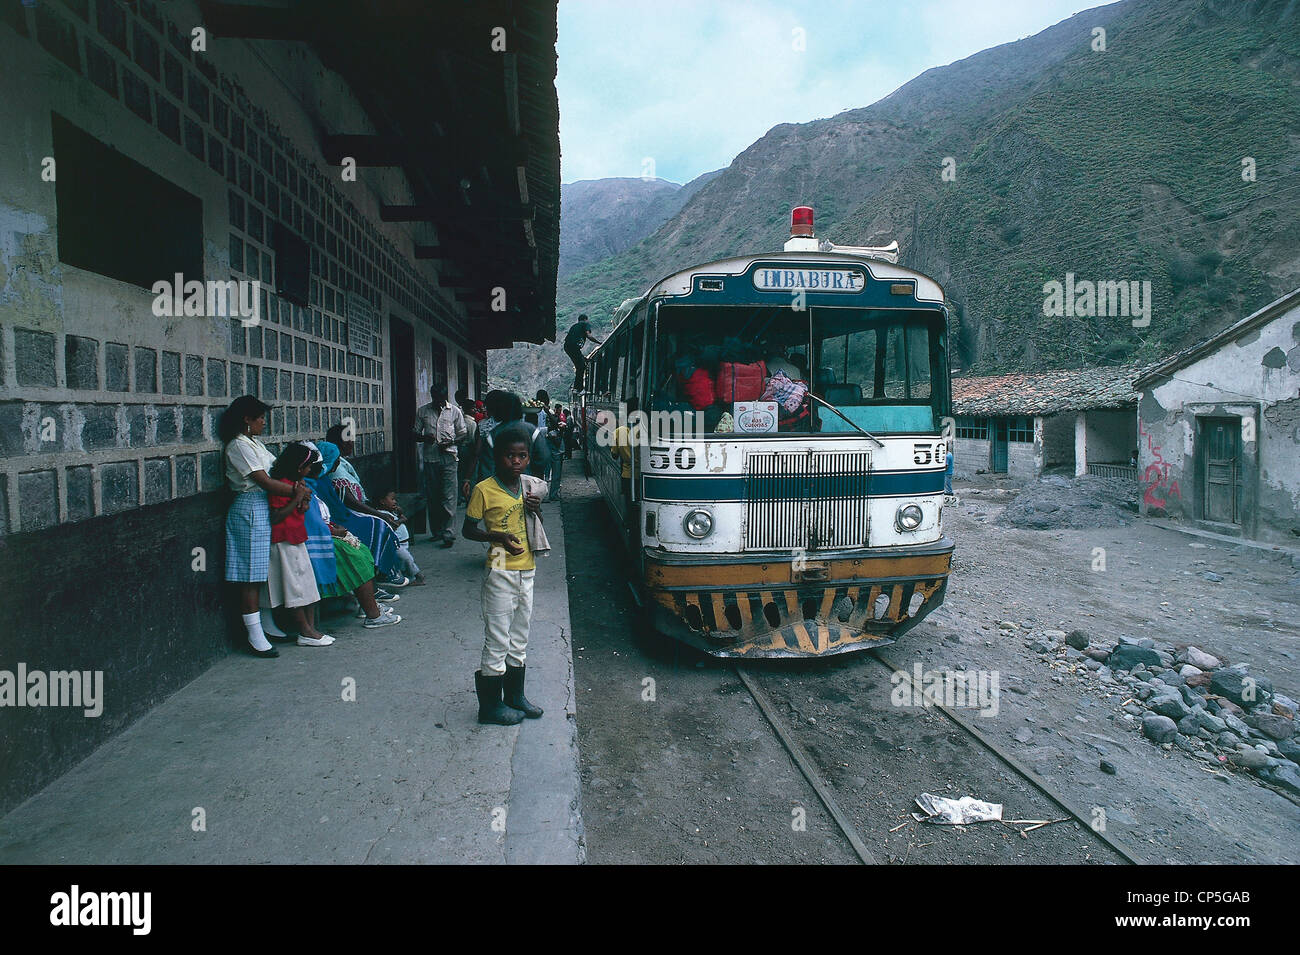 Ecuador - A autoferro, typical means of transport on rails, parked at a station en route from Ibarra to San Lorenzo. - Stock Image